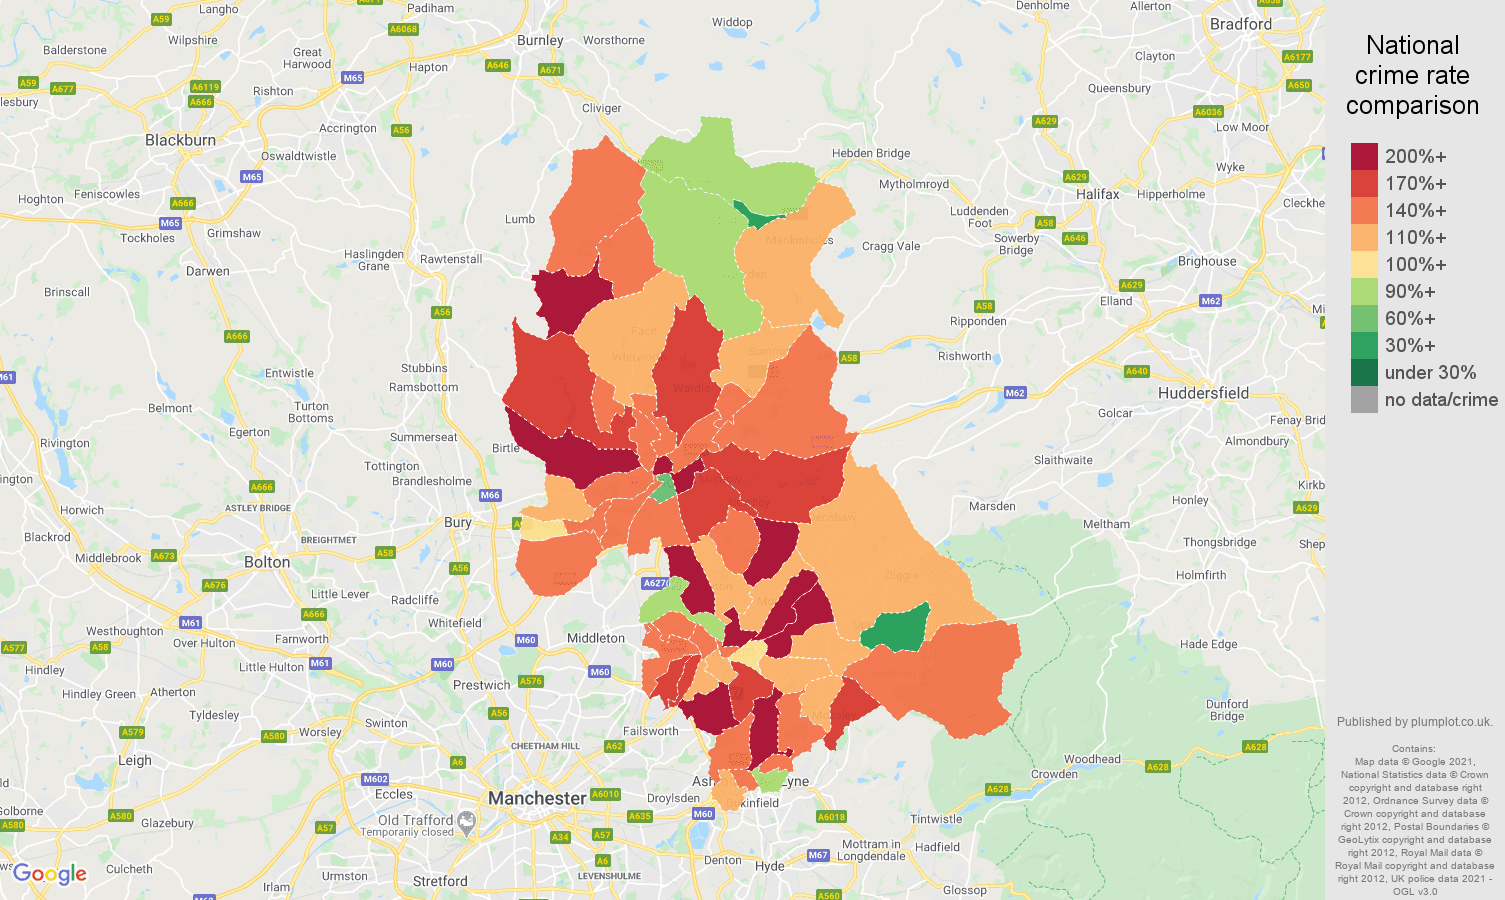 Oldham burglary crime rate comparison map